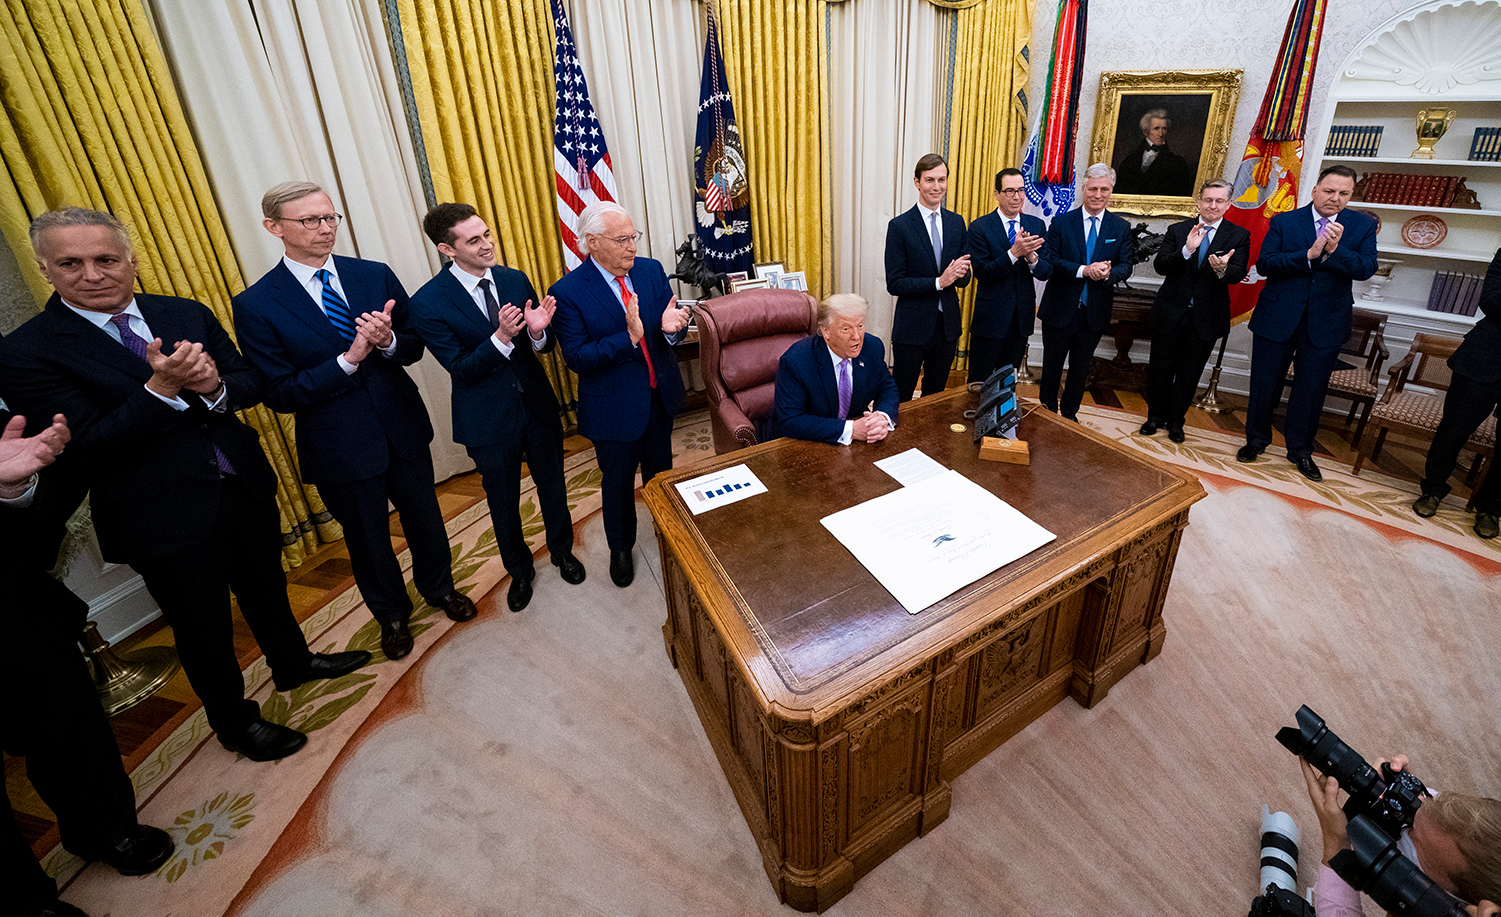 President Donald Trump speaks during a meeting with leaders of Israel and UAE announcing a peace agreement to establish diplomatic ties with Israel and the UAE on August 13, 2020 in Washington, DC. Doug Mills-Pool/Getty Images.